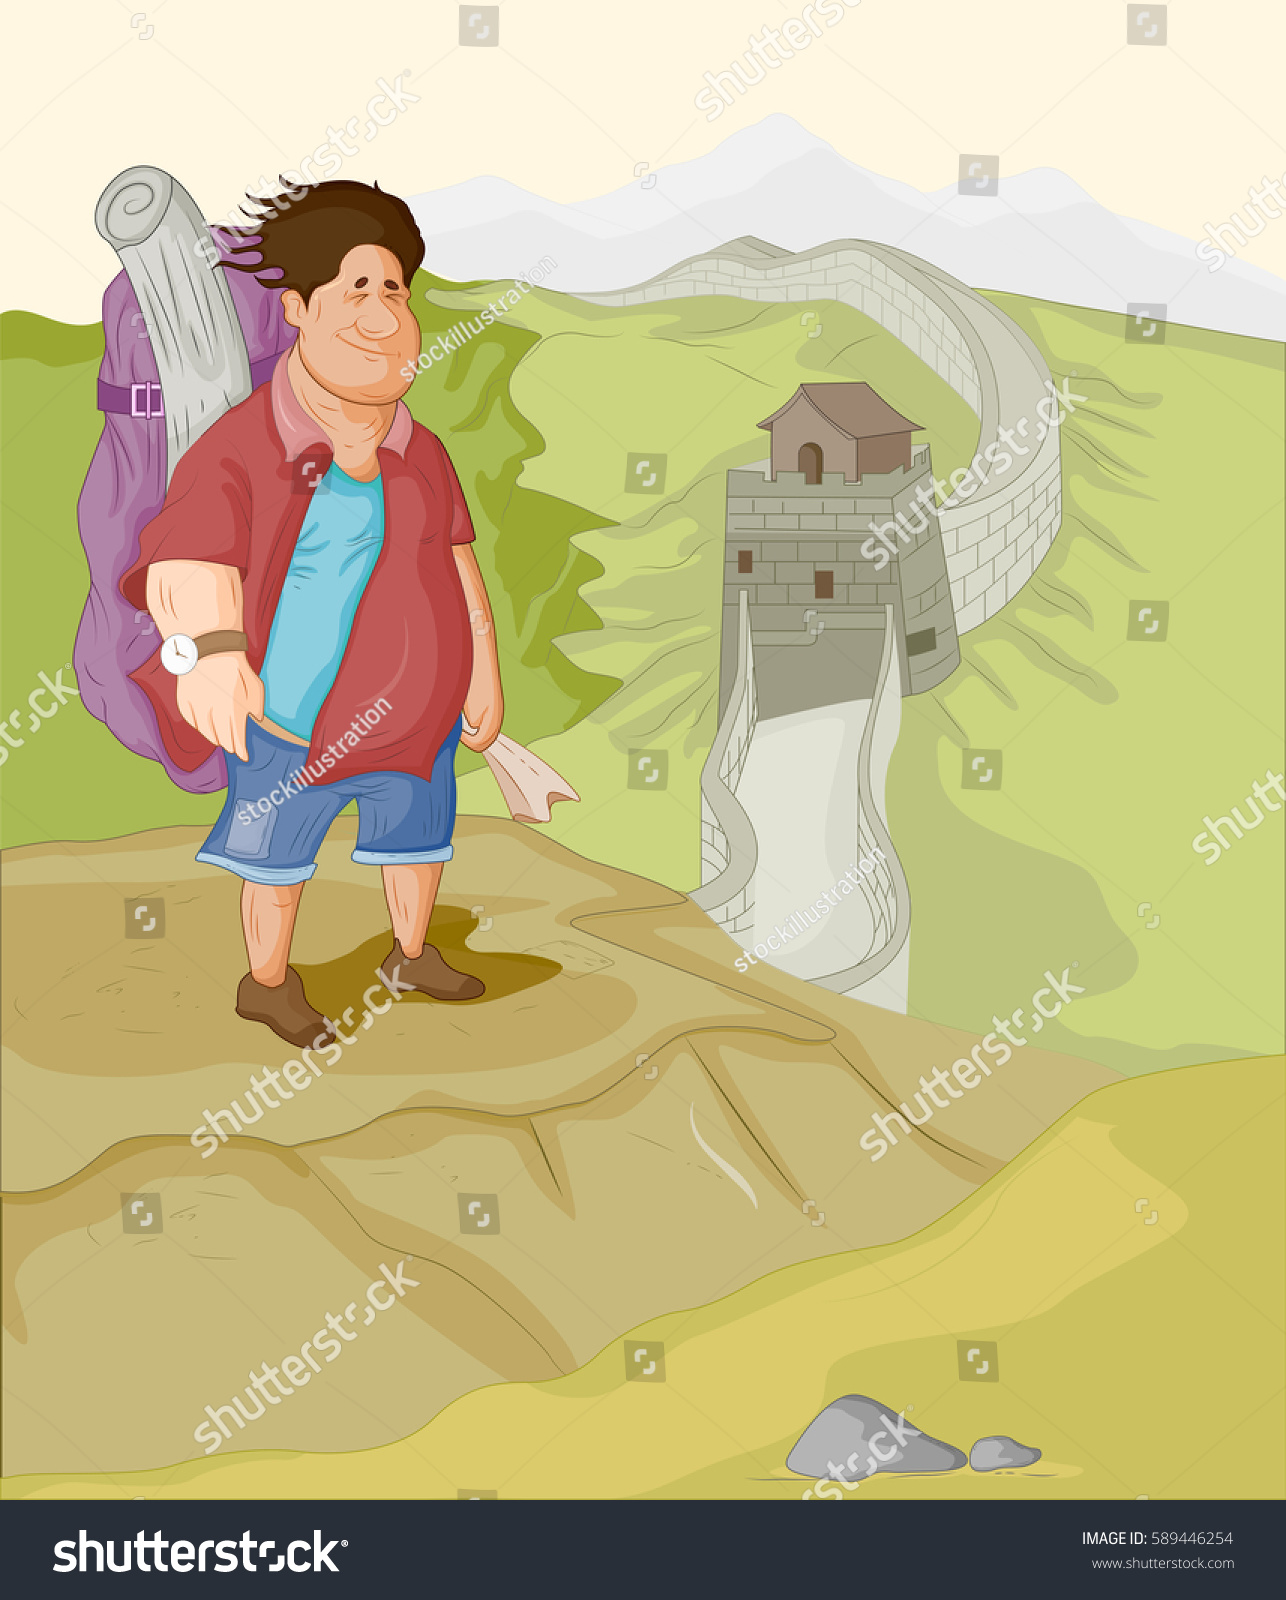 Tourist Traveling Great Wall China Vector Stock Vector 589446254 ...